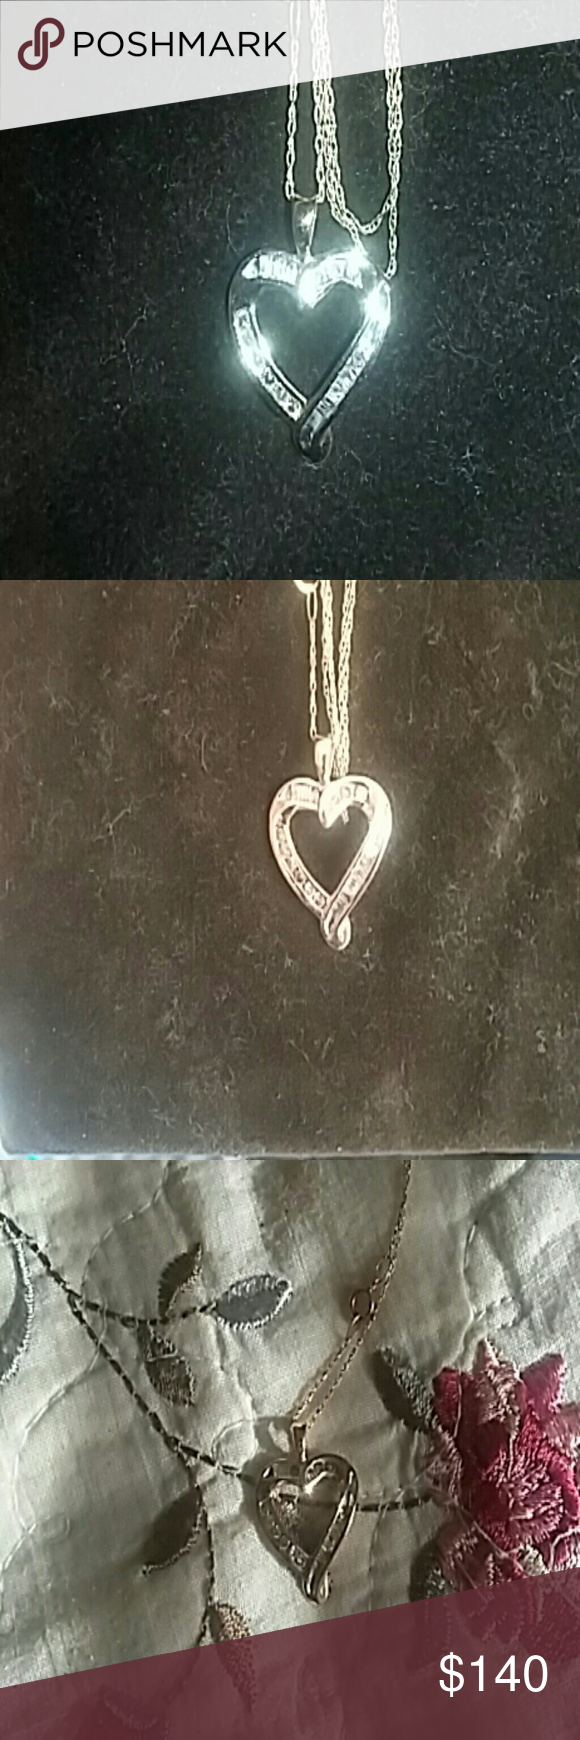 Heart necklace gold chain and diamonds Diamonds around the heart a beautiful necklace of mine just hadn't worn it that much it's real chain and diamonds Jewelry Necklaces